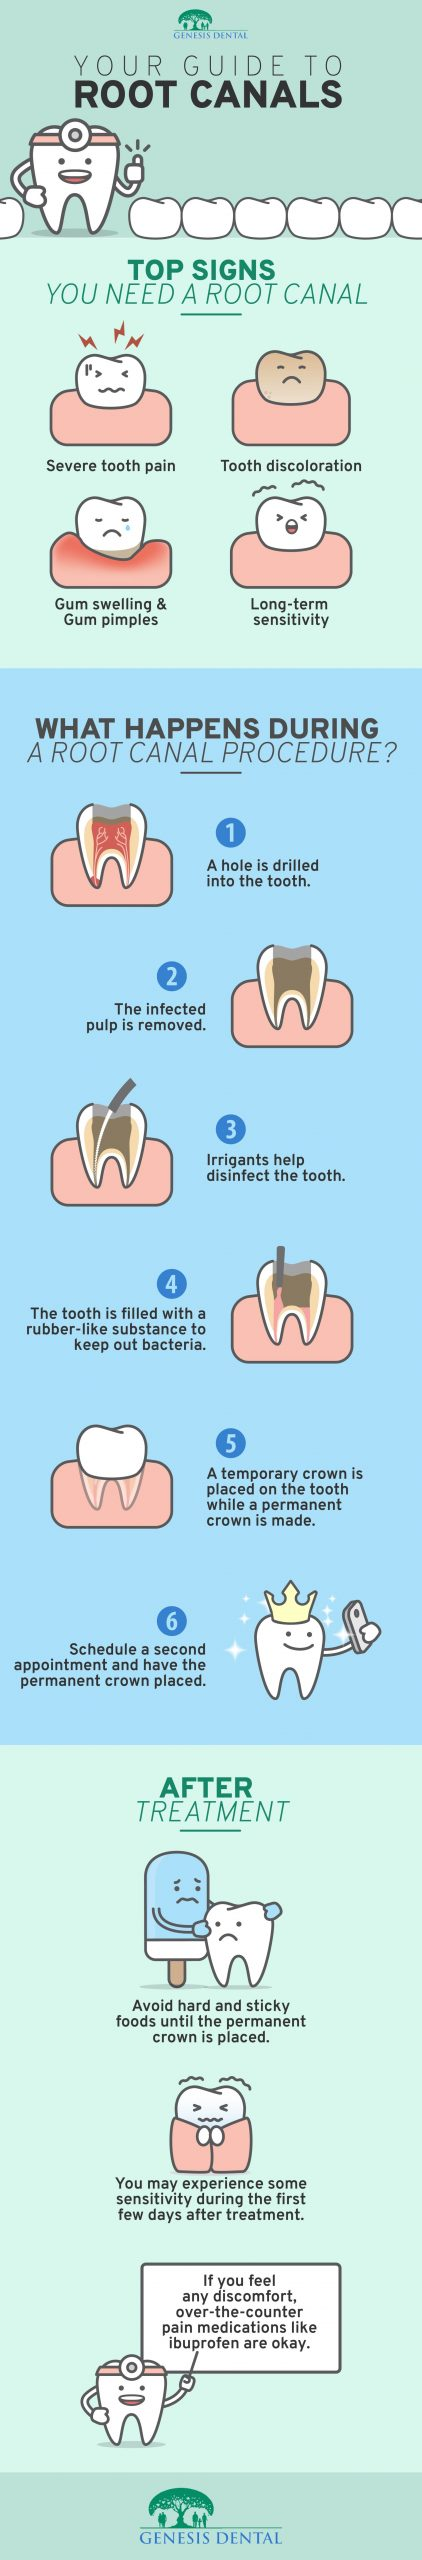 An infographic about root canals